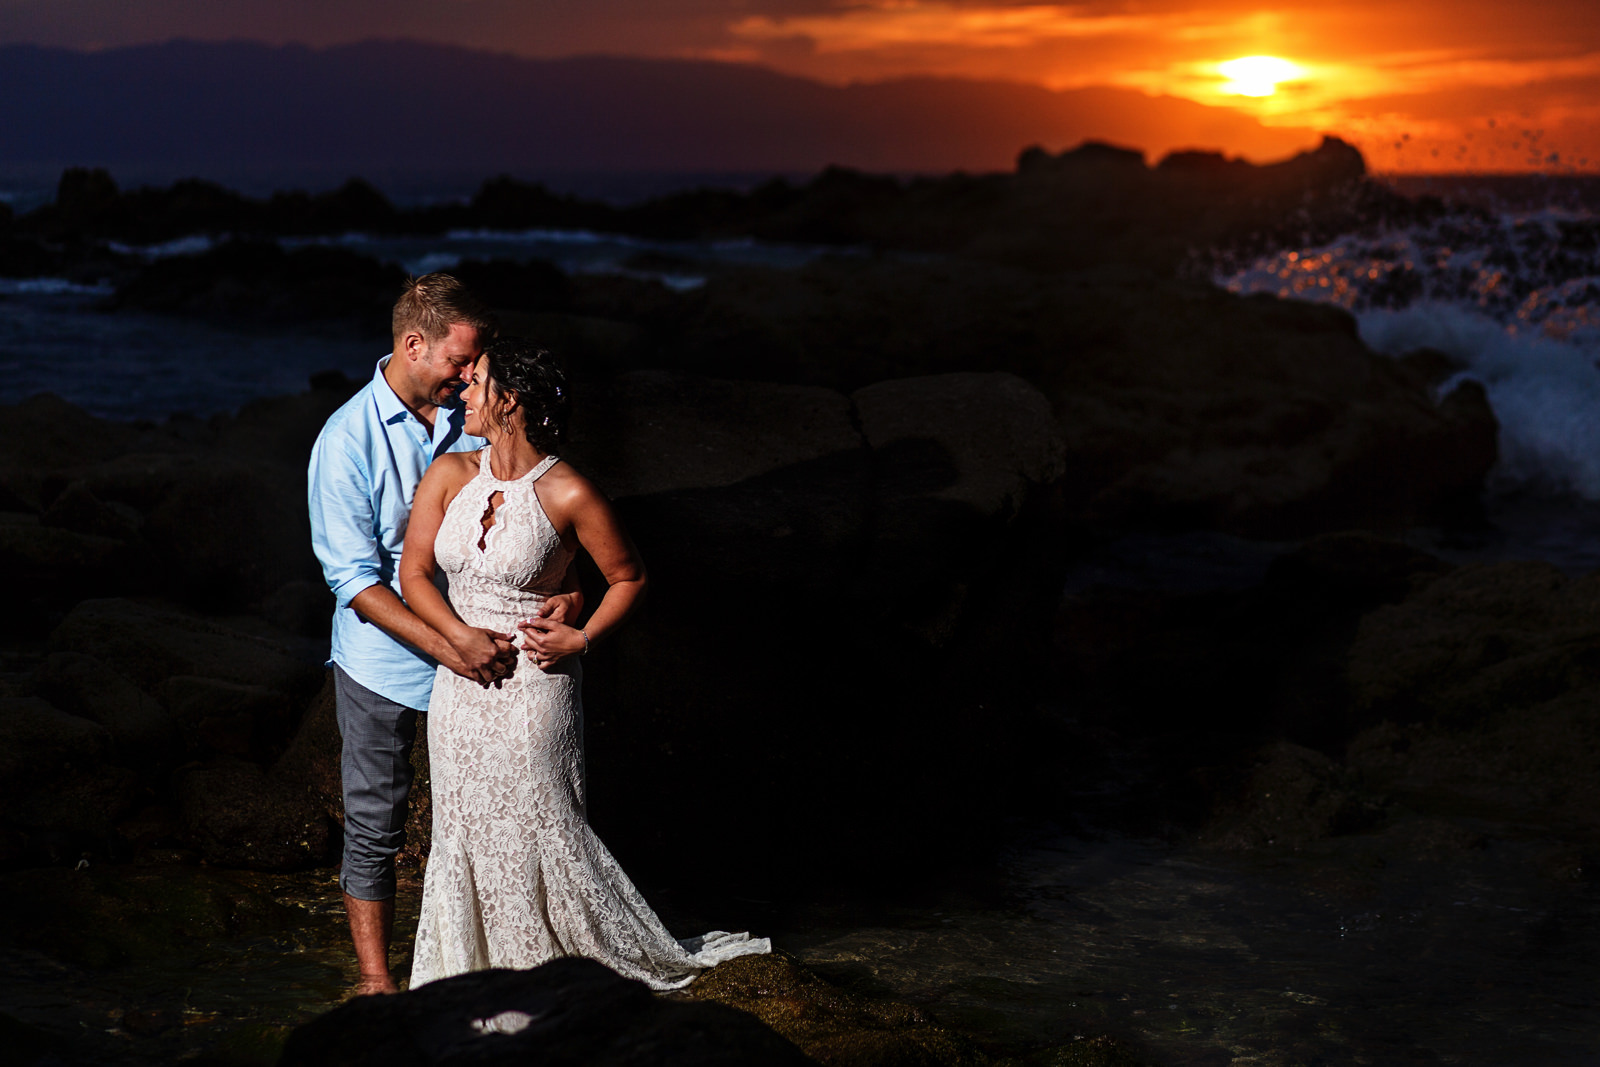 Bride and groom standing on rock over the ocean near the beach with a sunset in the background